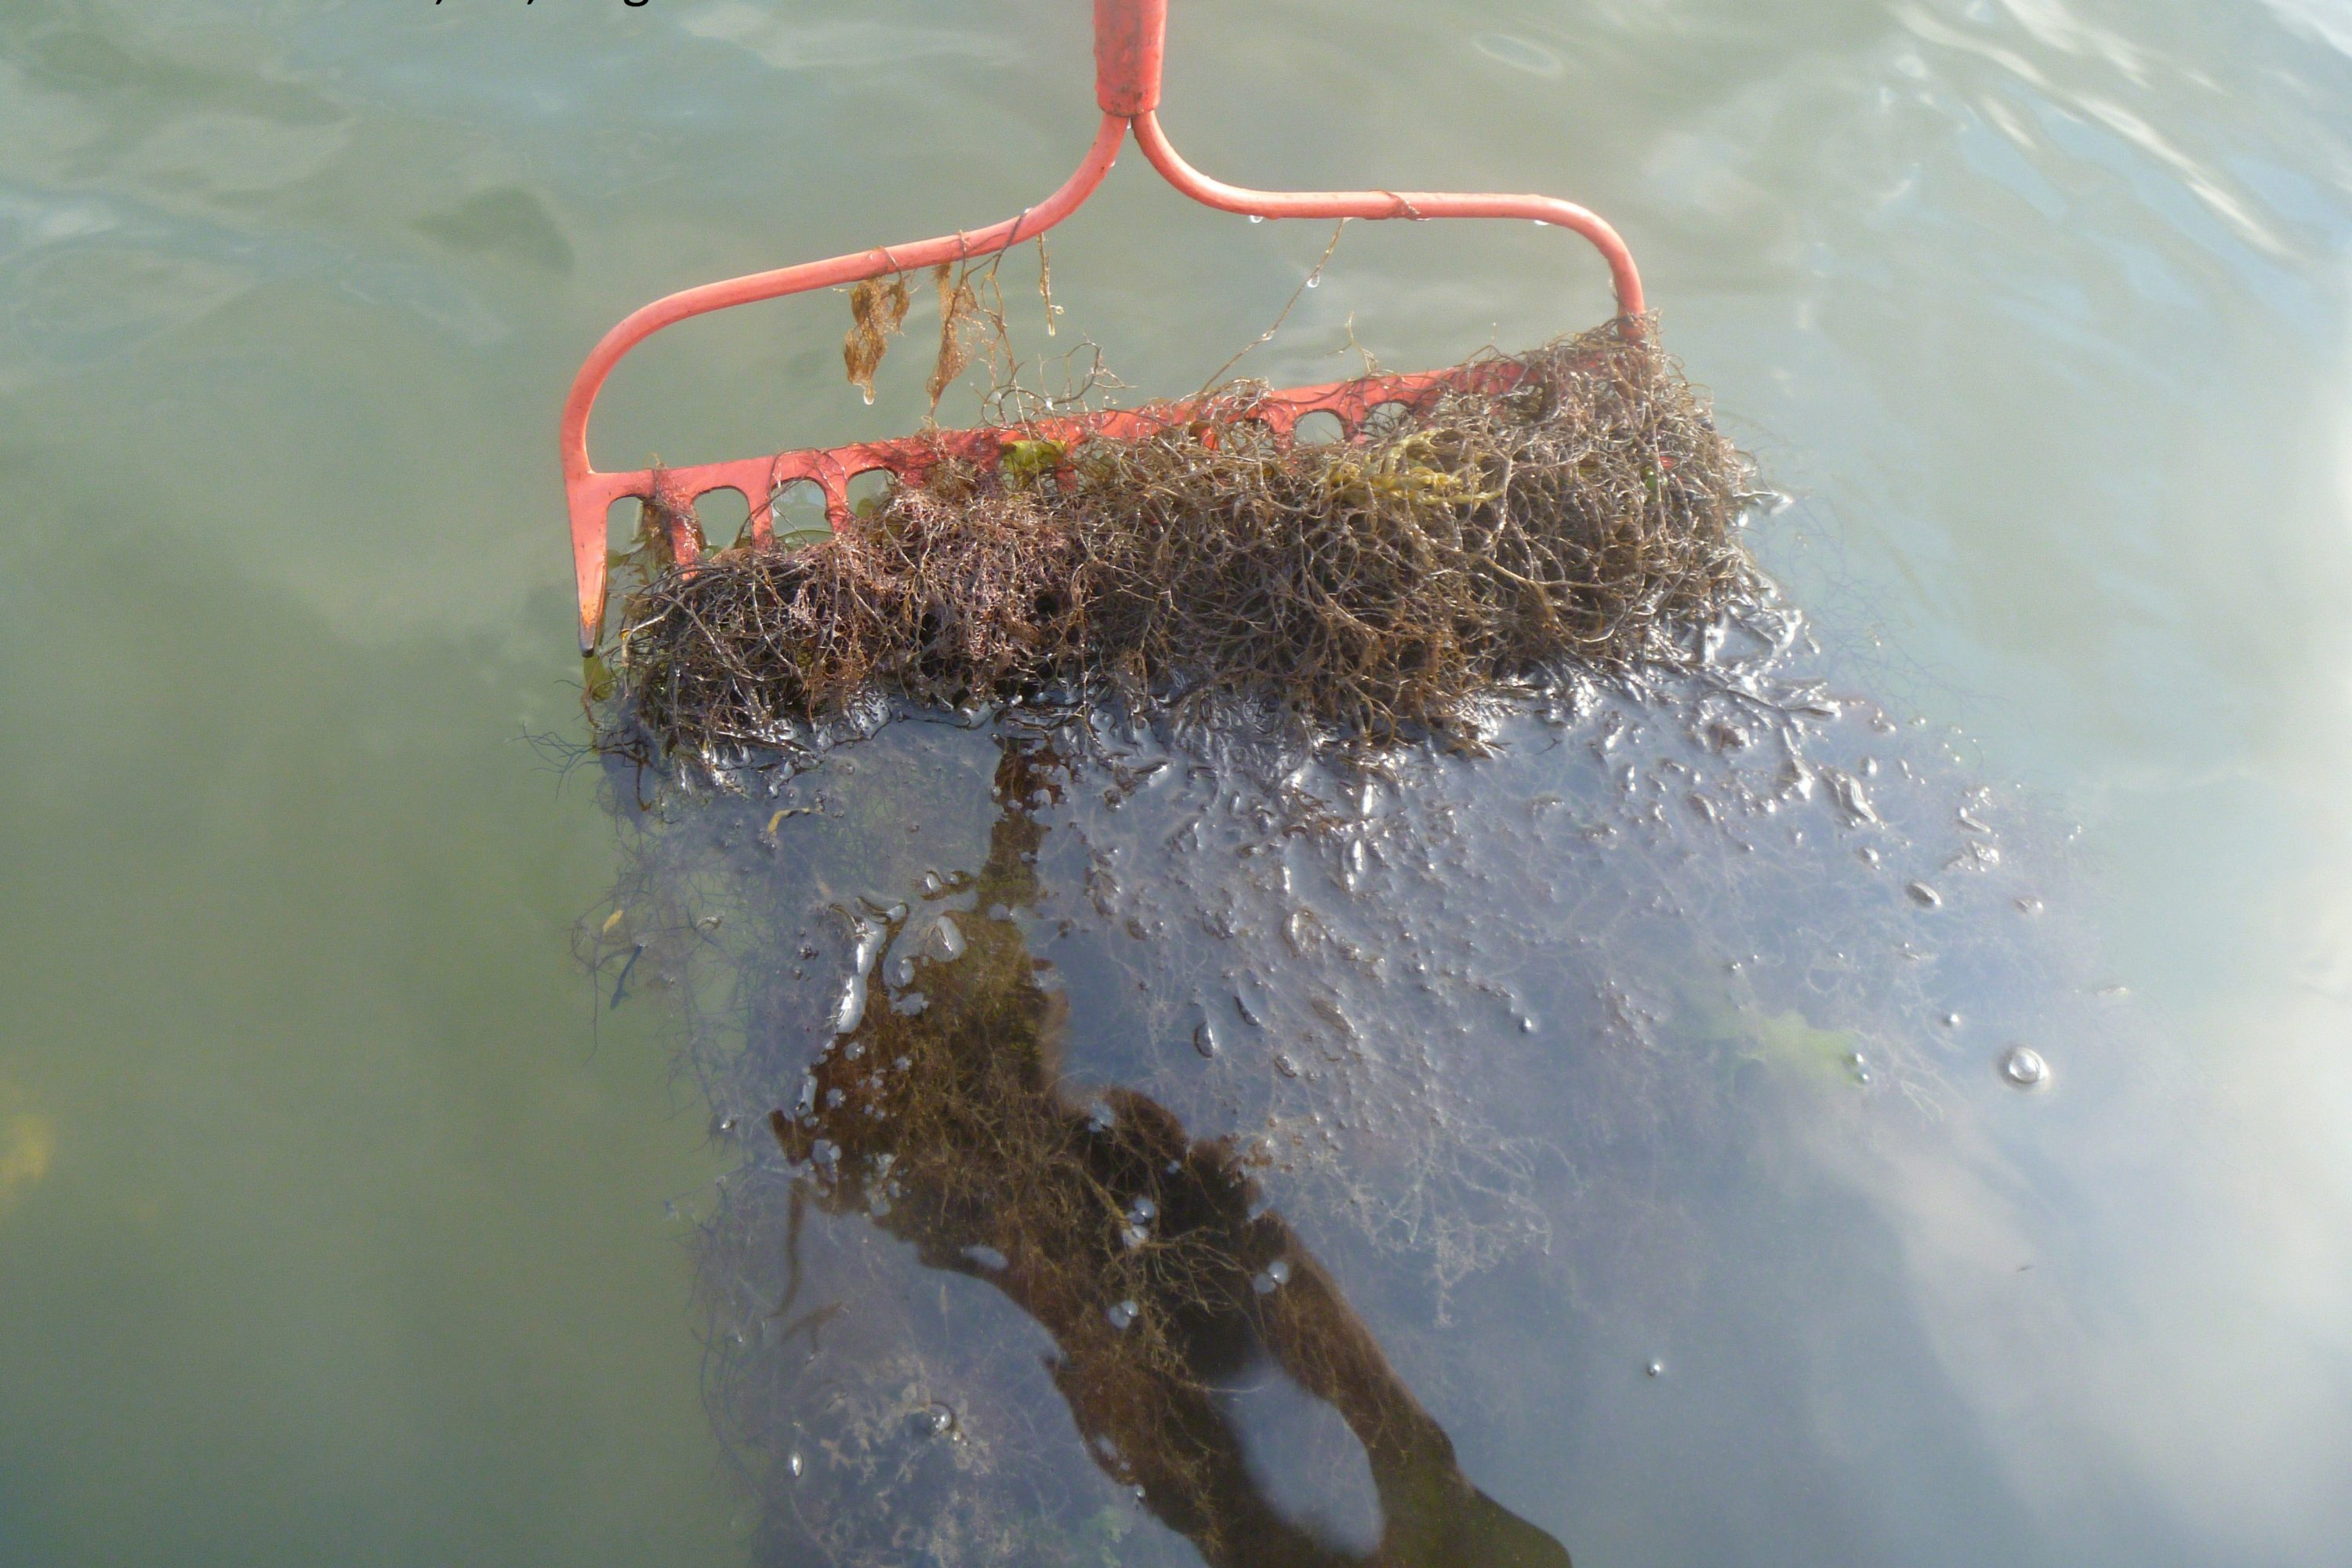 Seaweed collected by reaching down to the bottom and pulling up the rake. The branching red seaweed and the amount collected in just one pass indicate that a large amount of nutrients are fertilizing the growth of seaweed in this bay. (Jamie Vaudrey/UConn Photo)